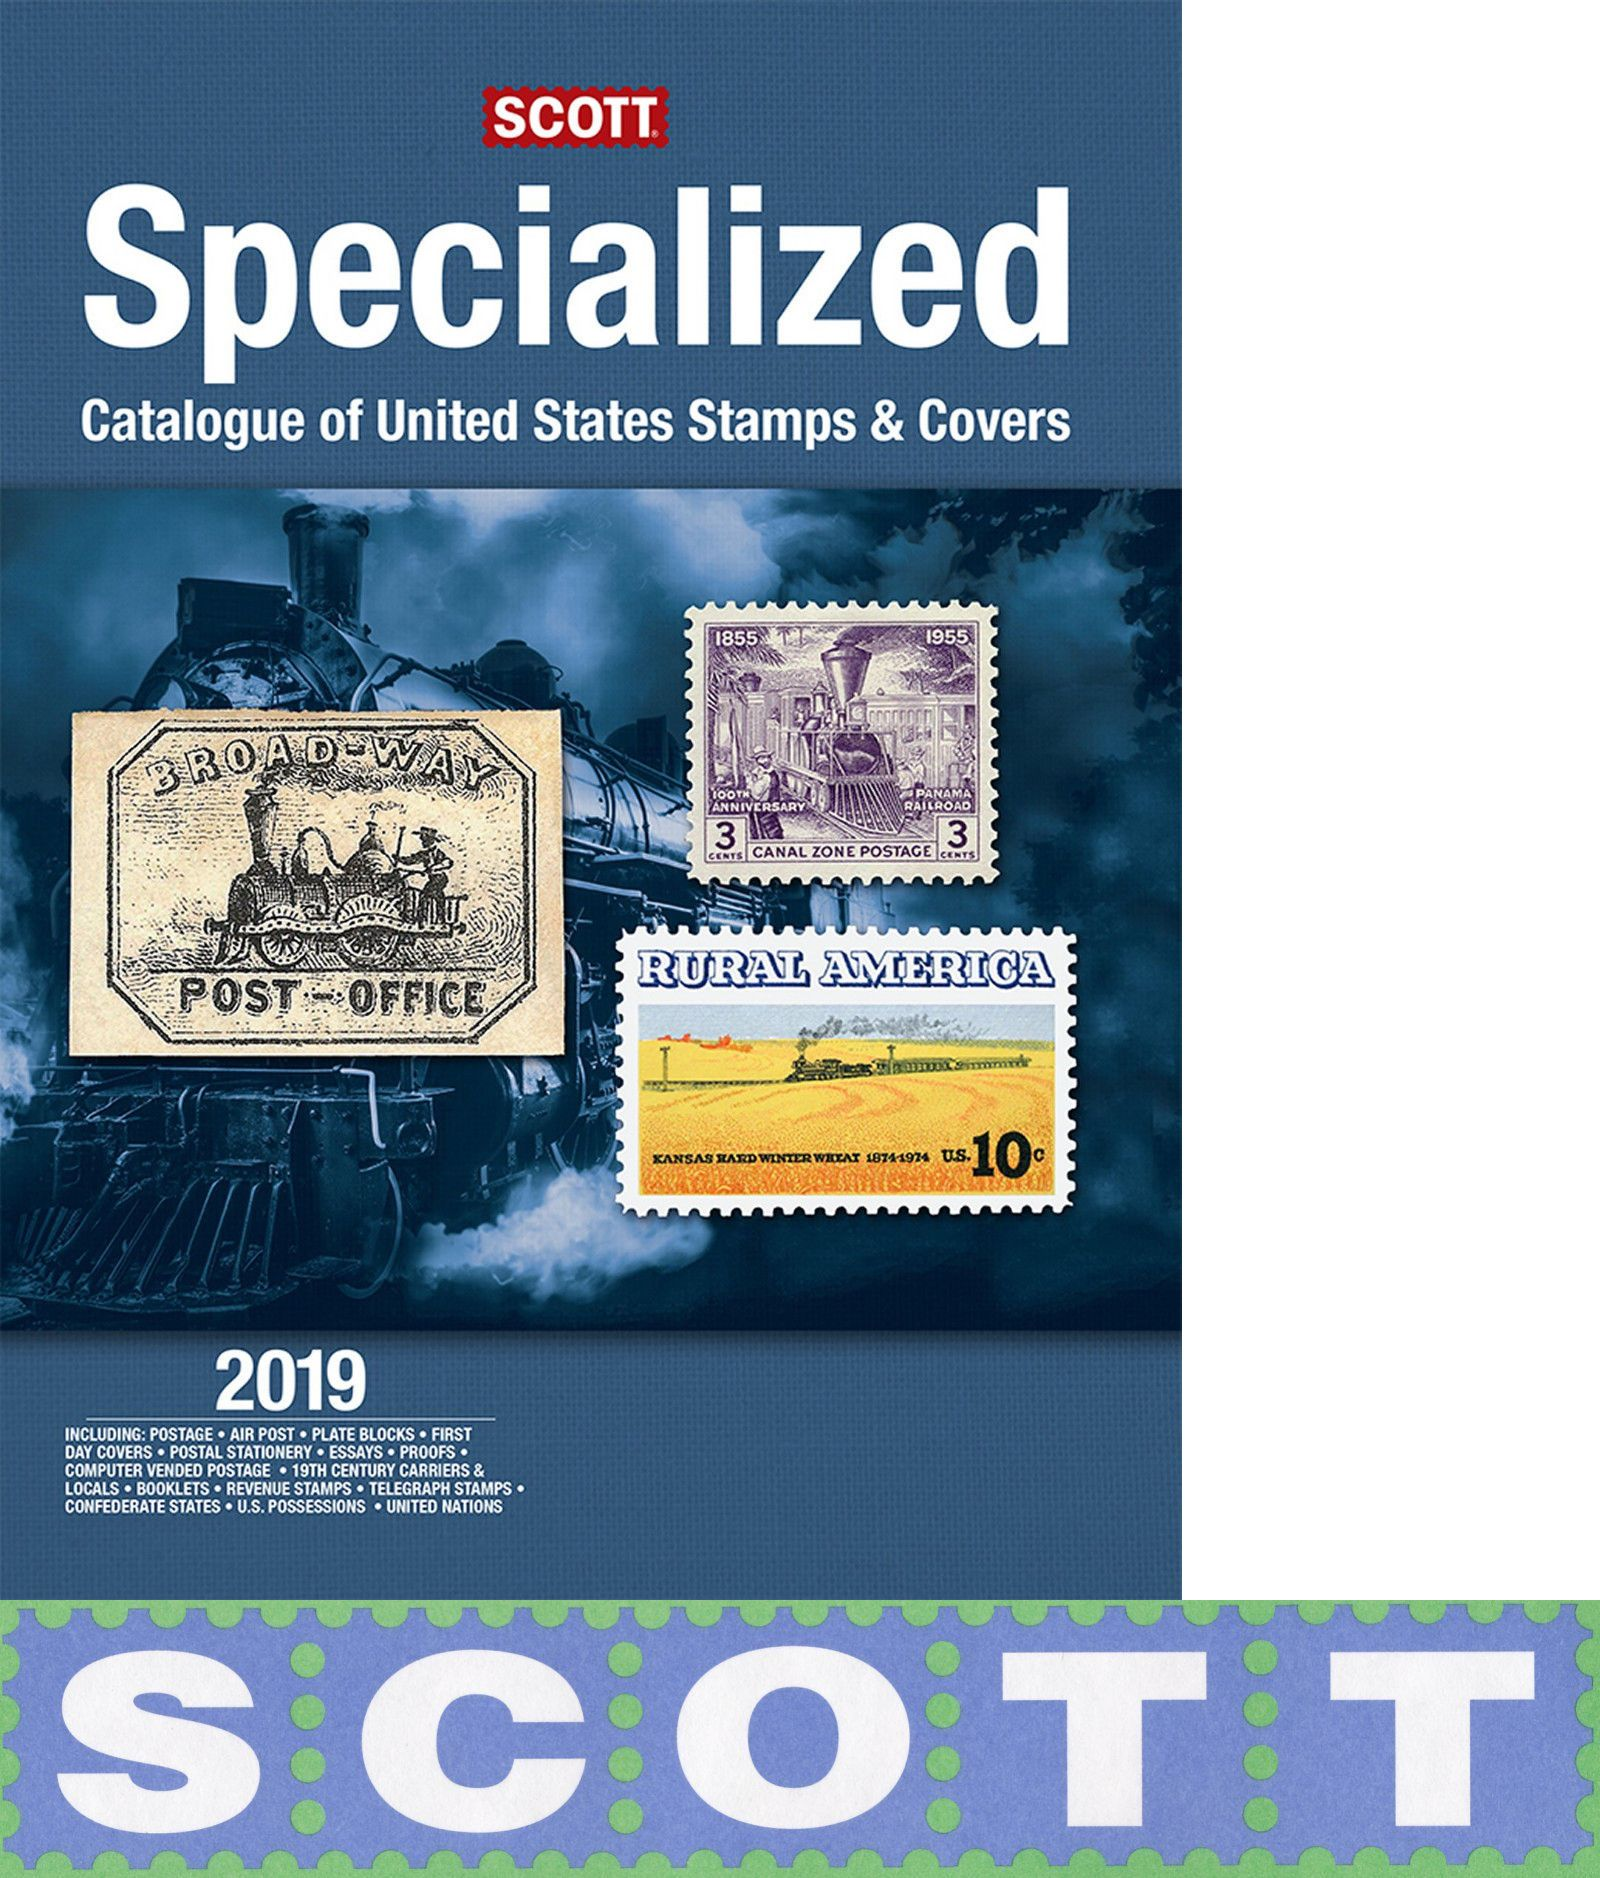 Publications 701 Scott Stamp Catalog 2019 Specialized BUY IT NOW ONLY 8022 On EBay